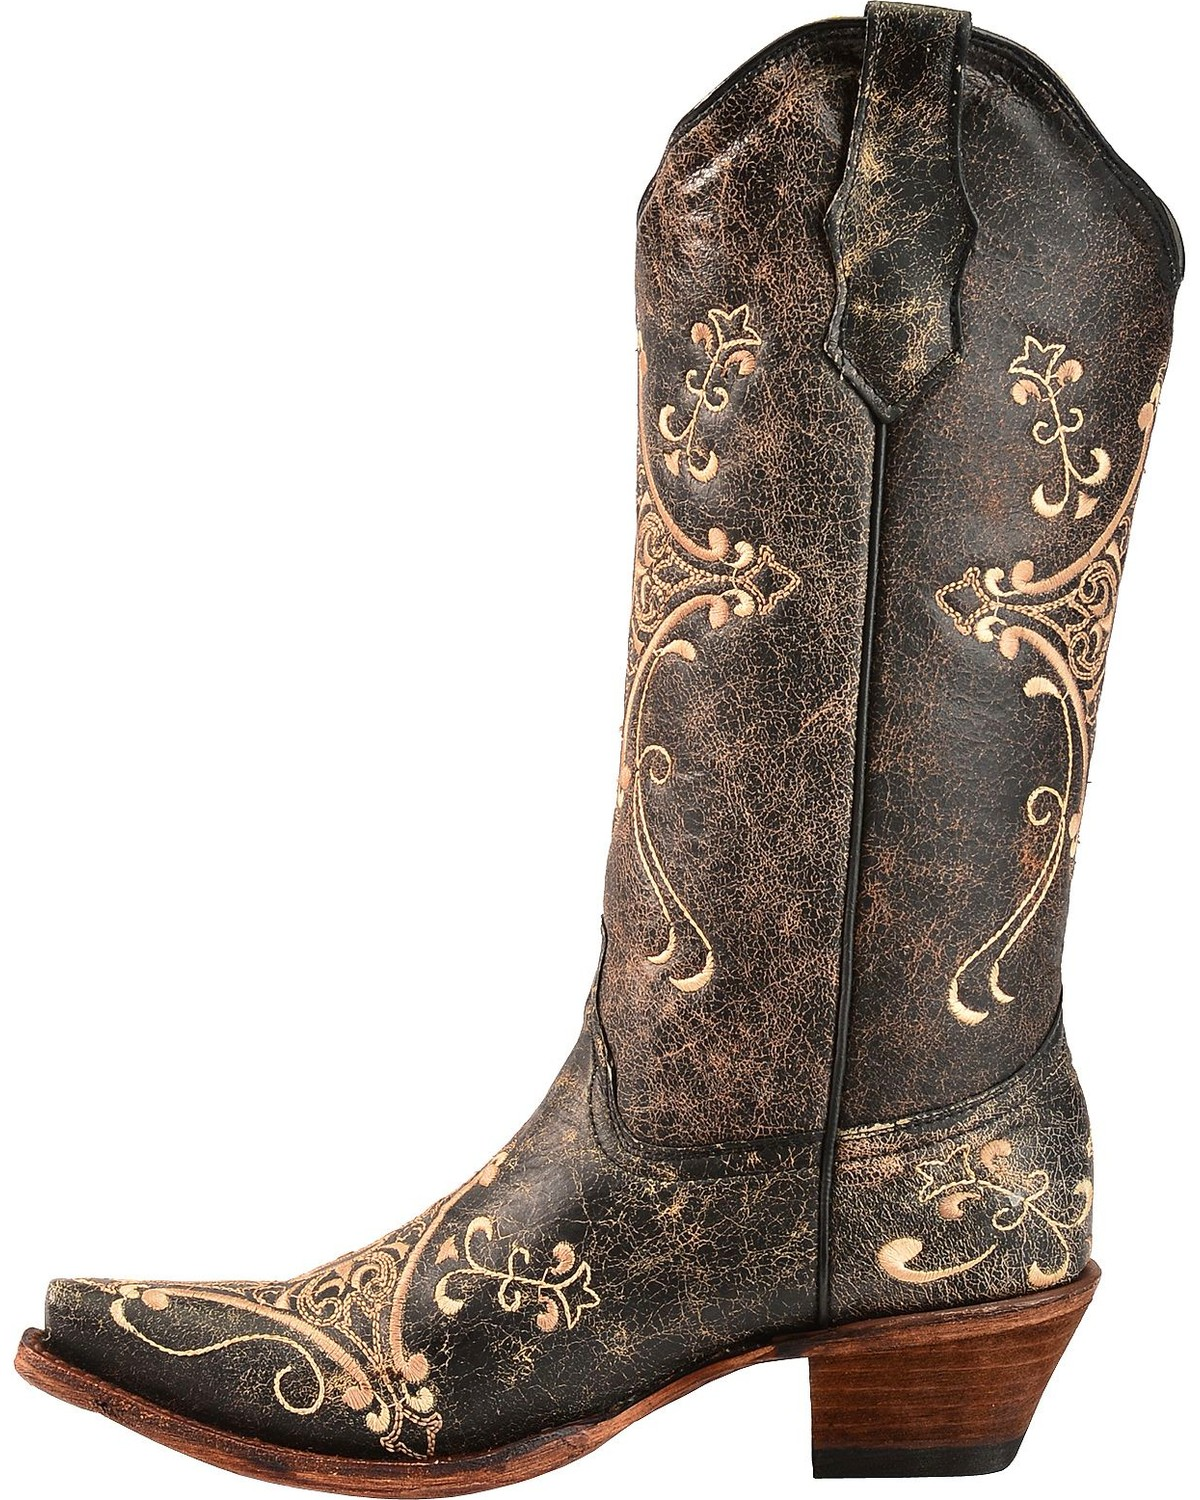 Circle G Crackle Tan Embroidered Cowgirl Boots Snip Toe